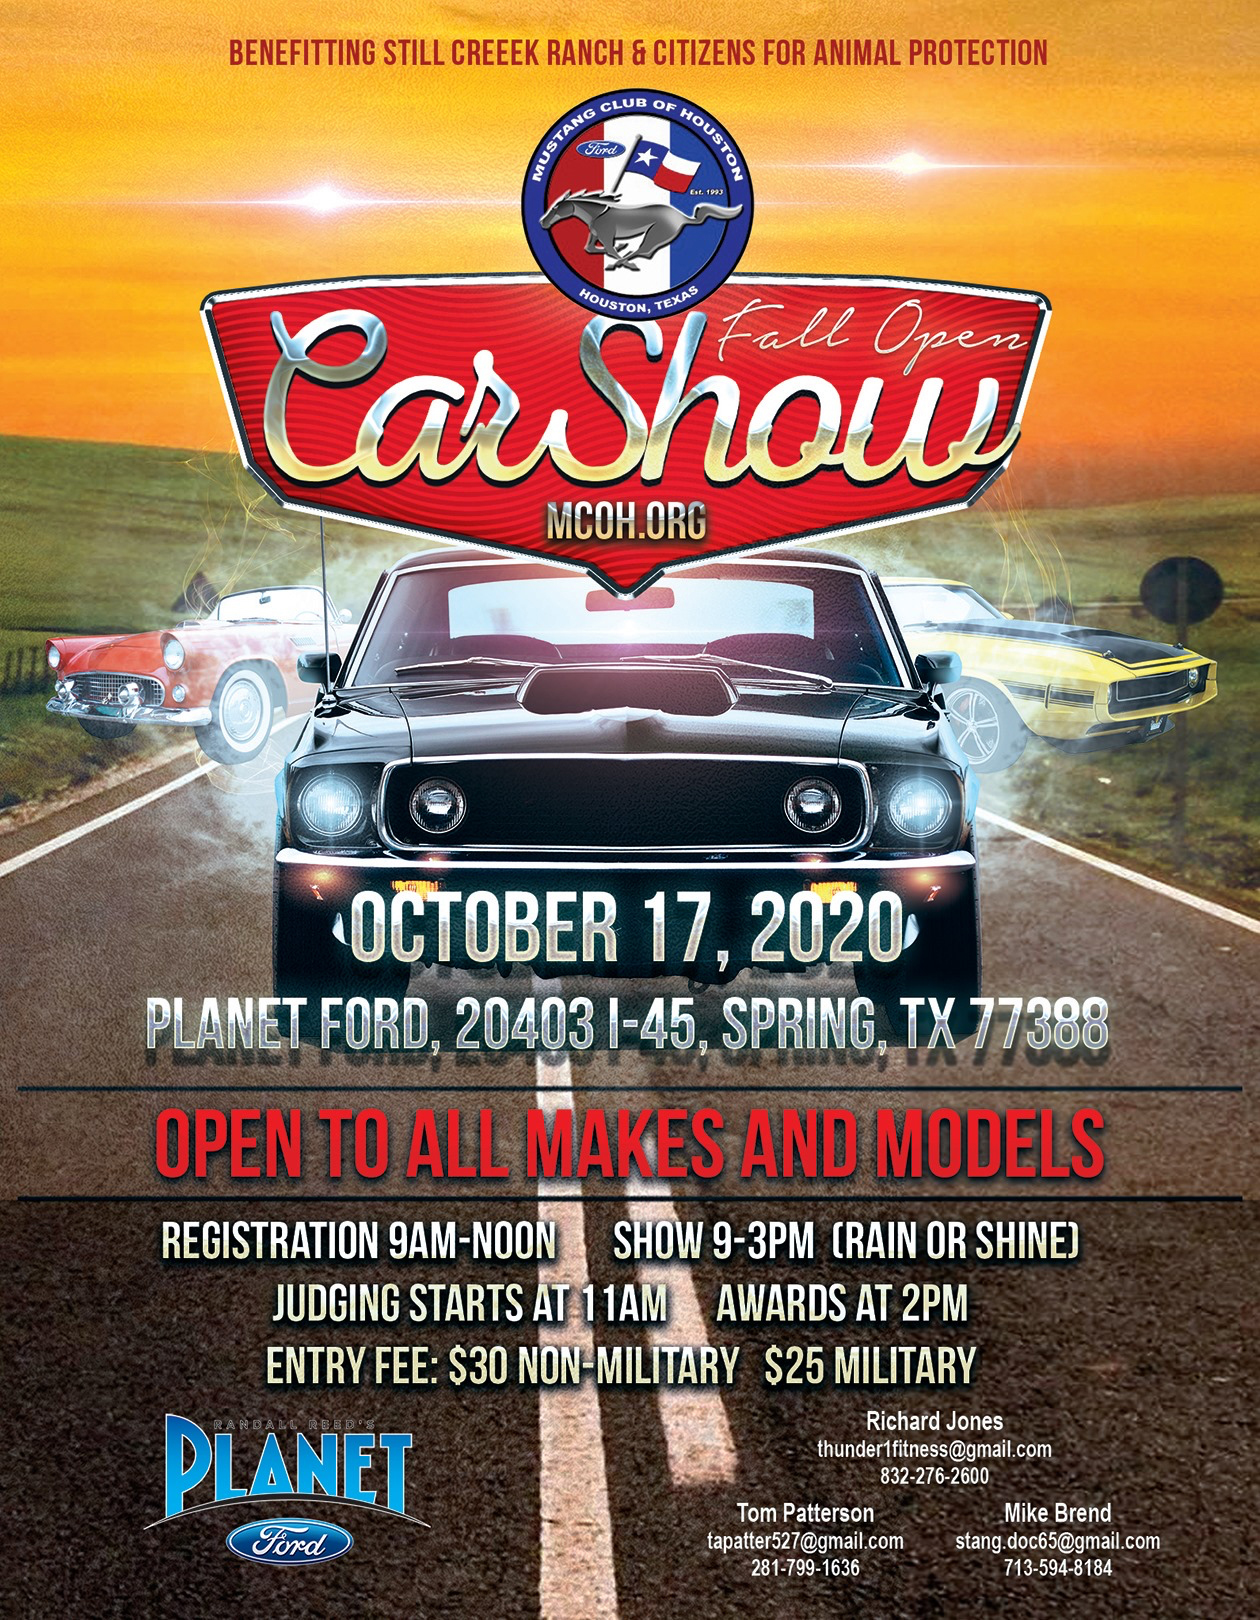 MCOH 2020 Fall Show - Planet Ford - October 17